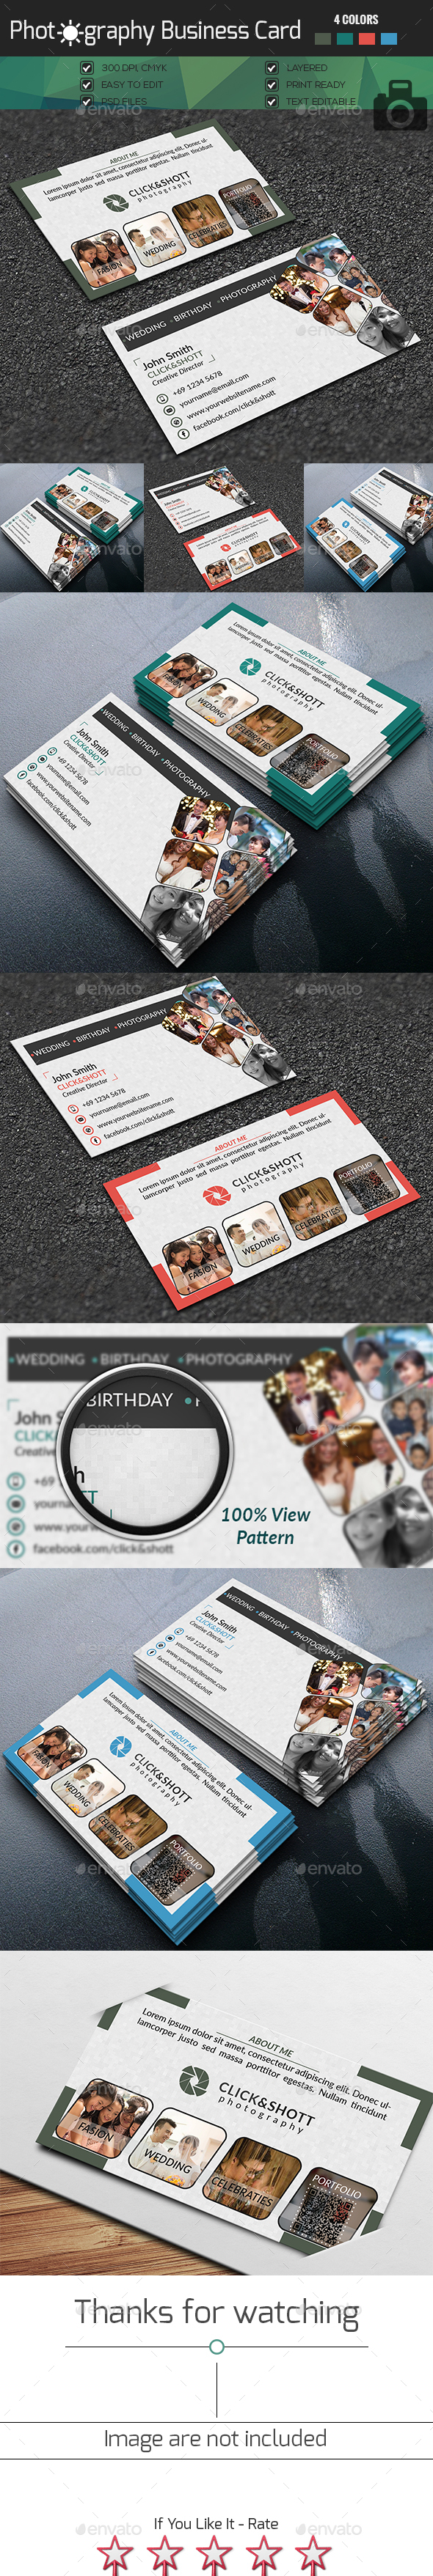 photographer business card - Business Cards Print Templates